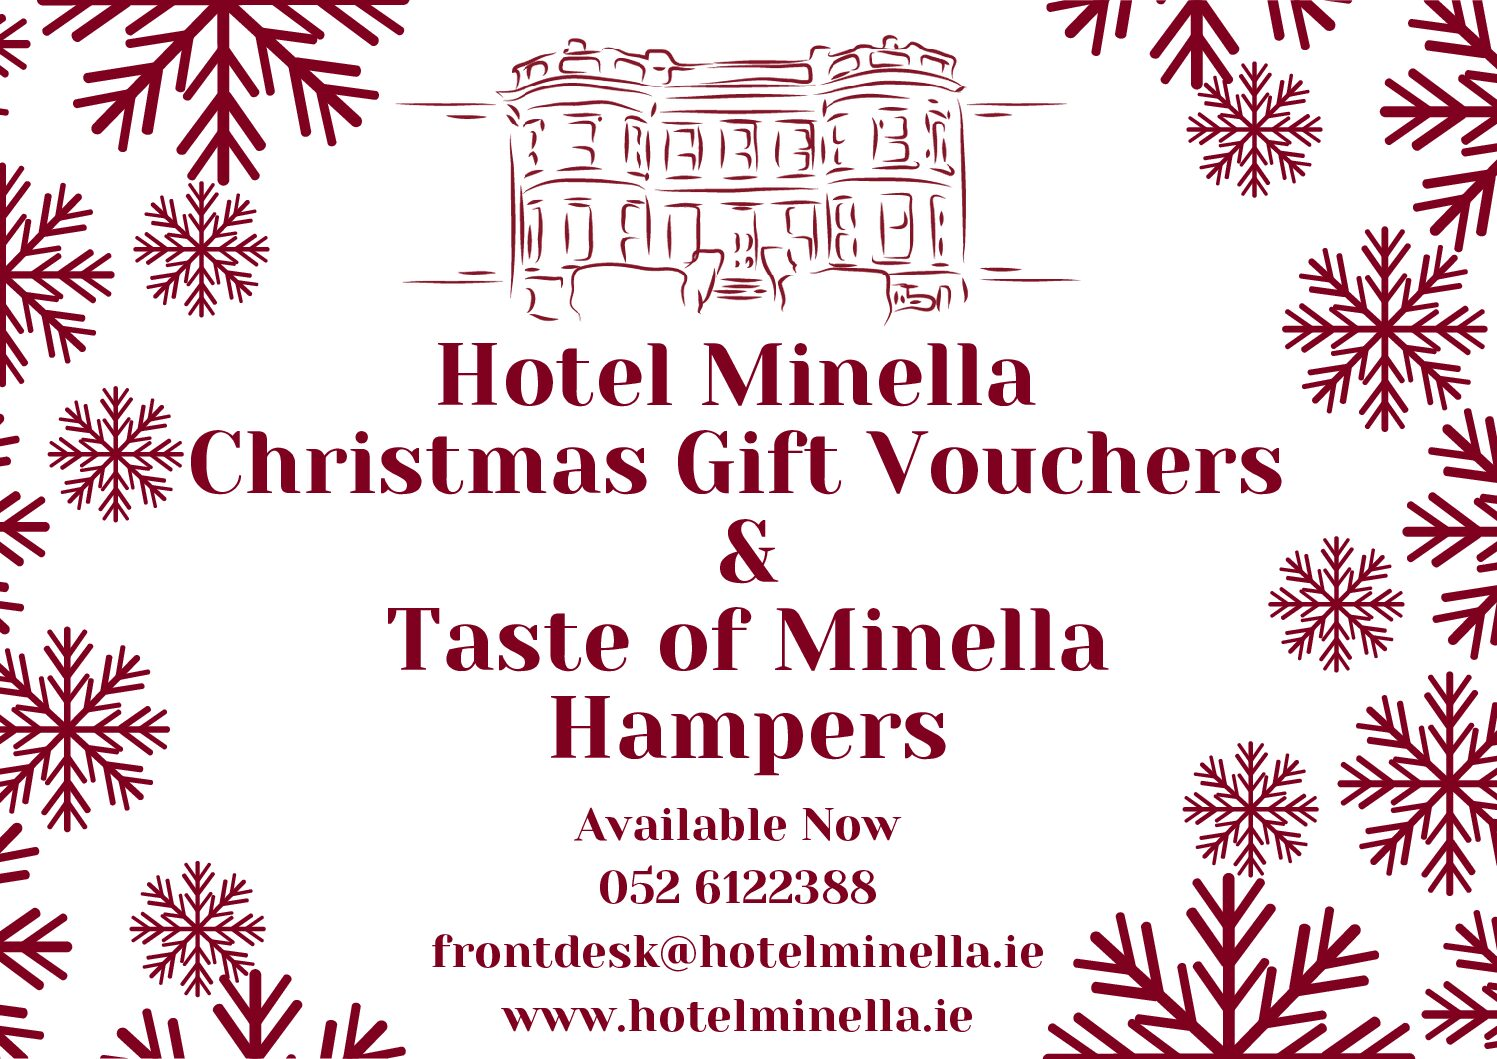 http://Give%20the%20best%20Christmas%20Gift%20with%20Hotel%20Minella%20Voucher